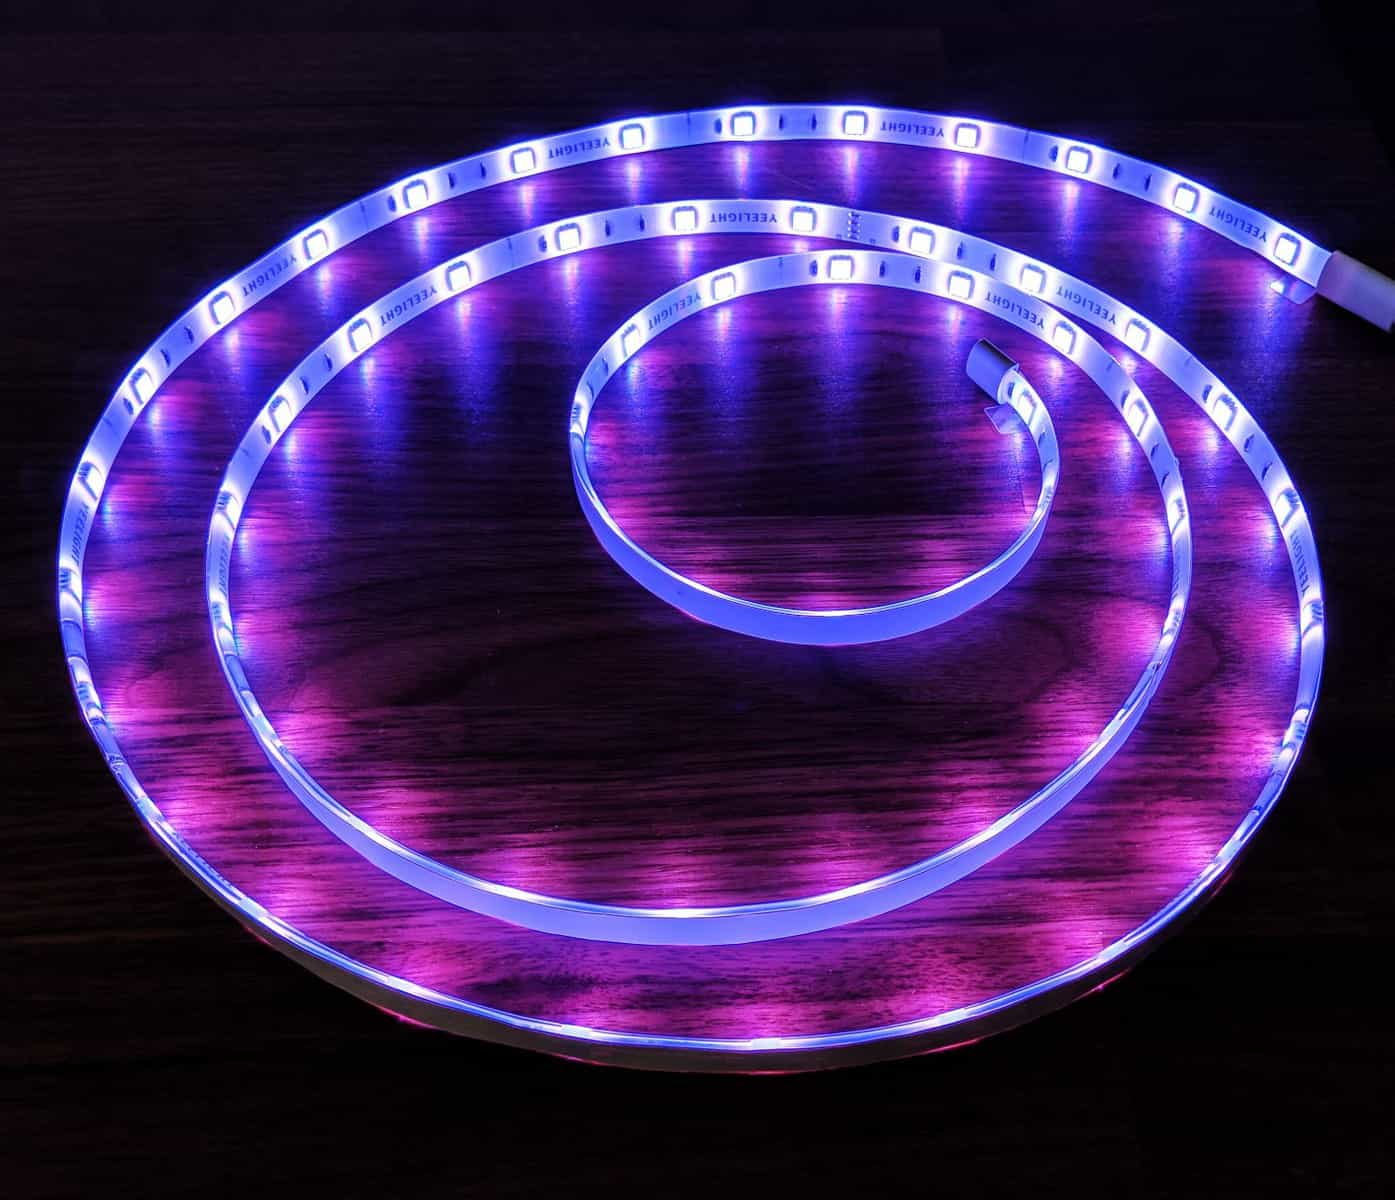 Yeelight-Strip-Photos09 Xiaomi Yeelight Smart Wi-Fi Light Strip Review